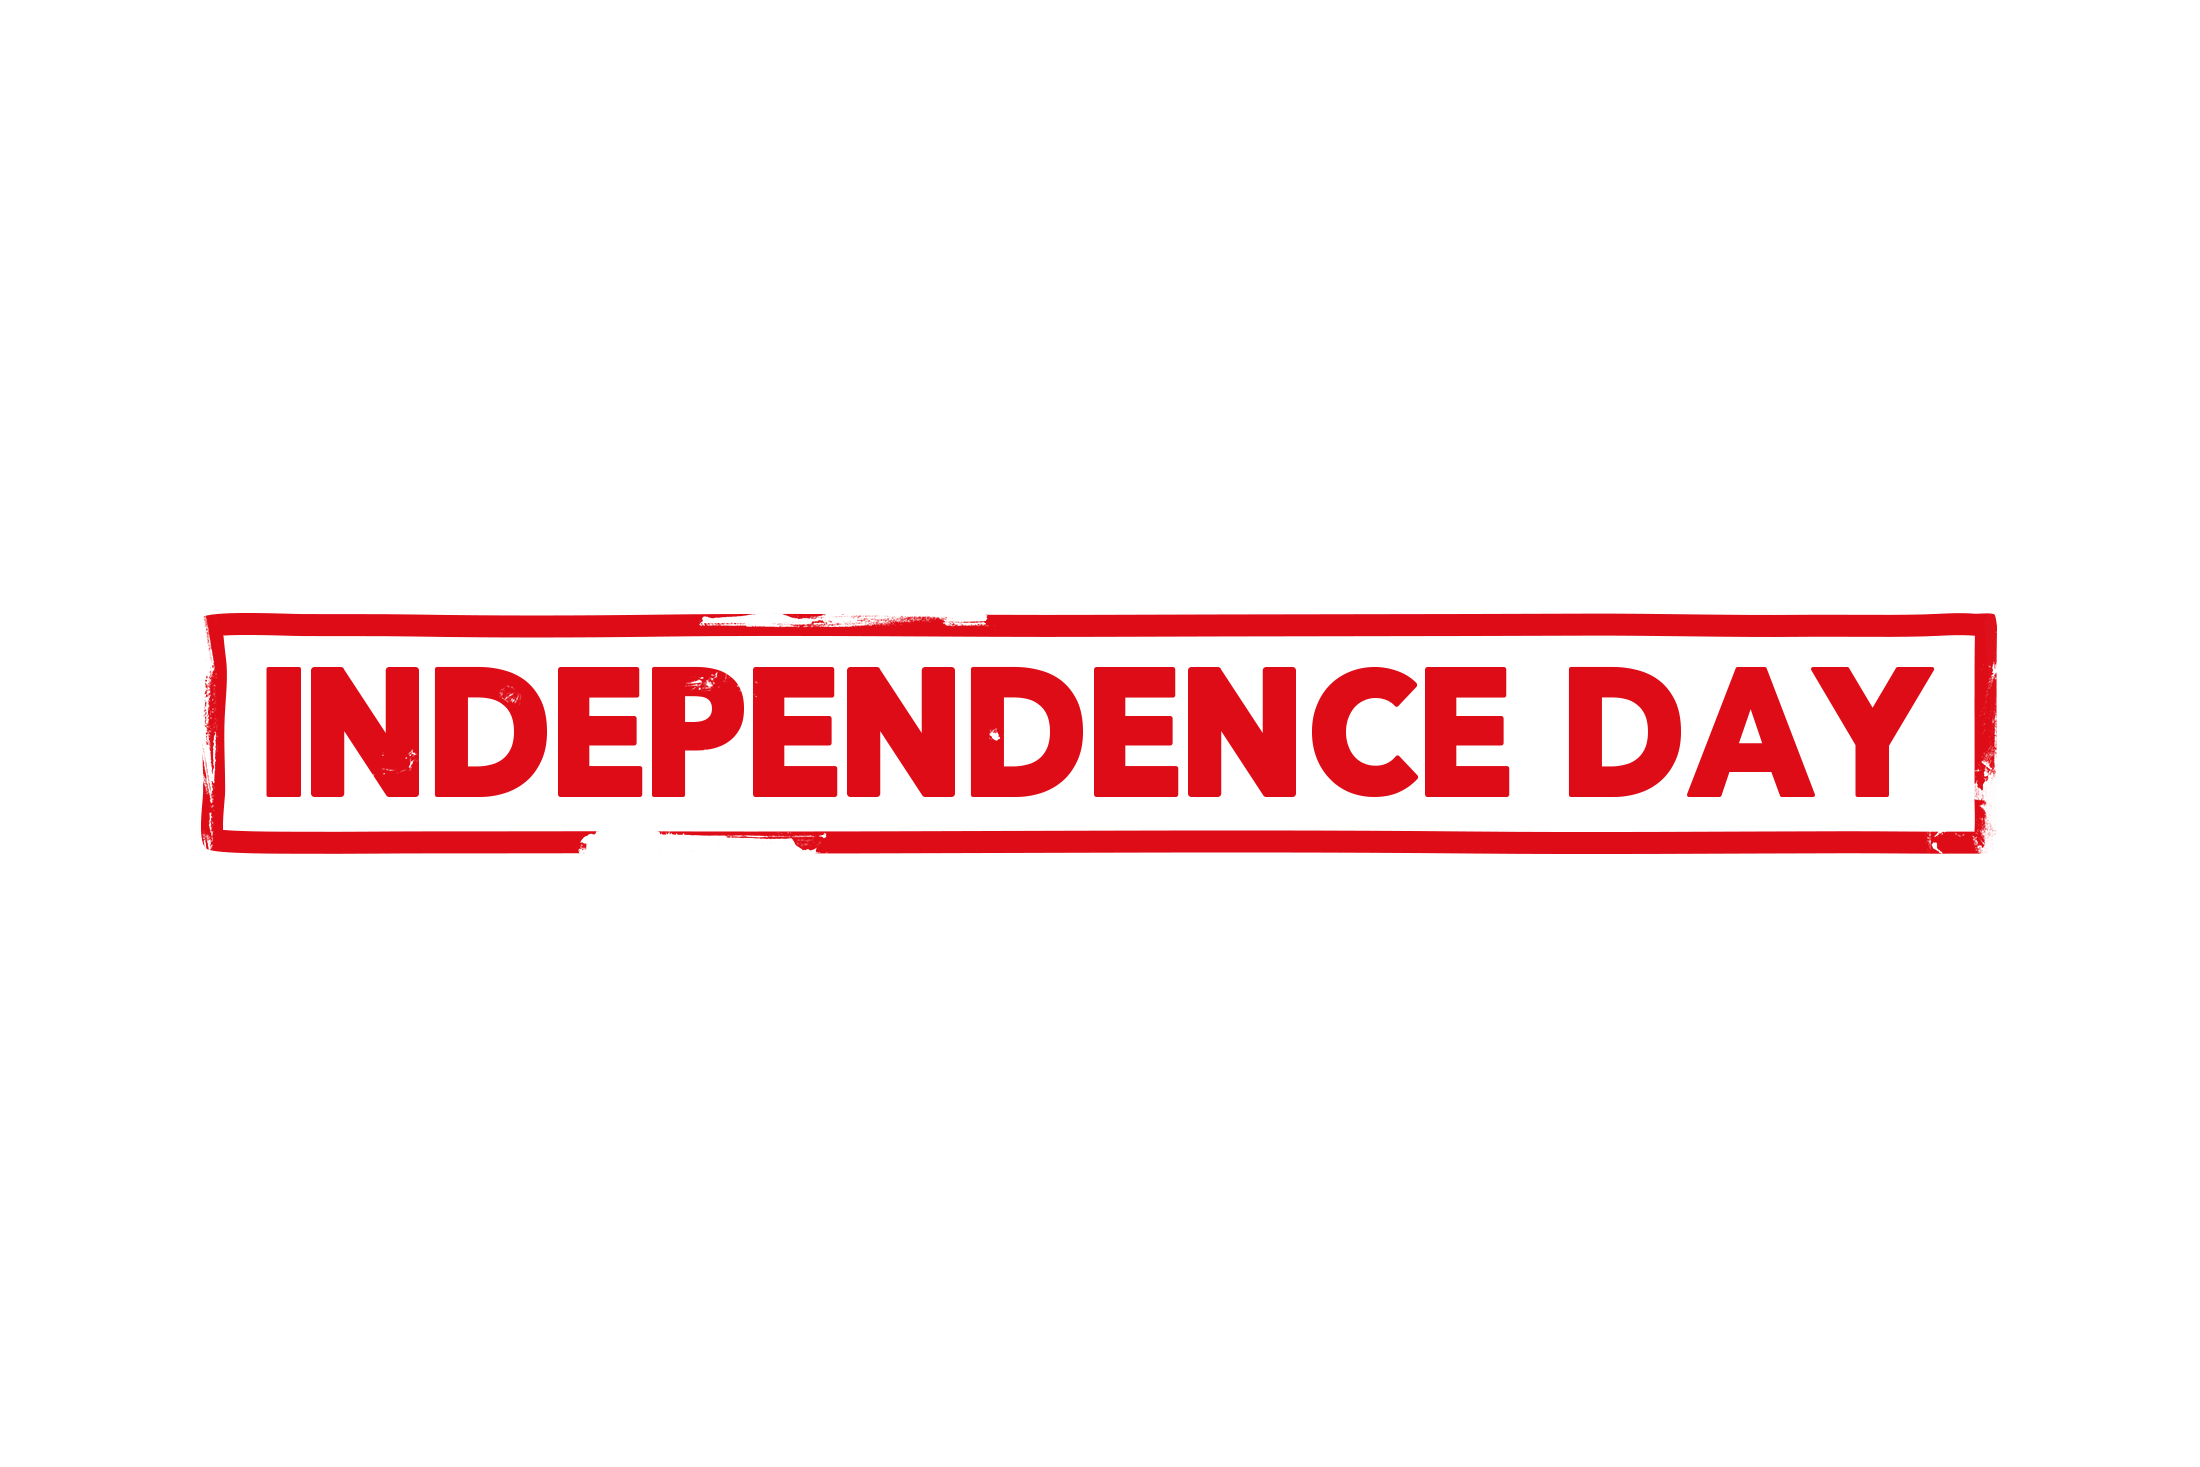 Independence day stamp PSD